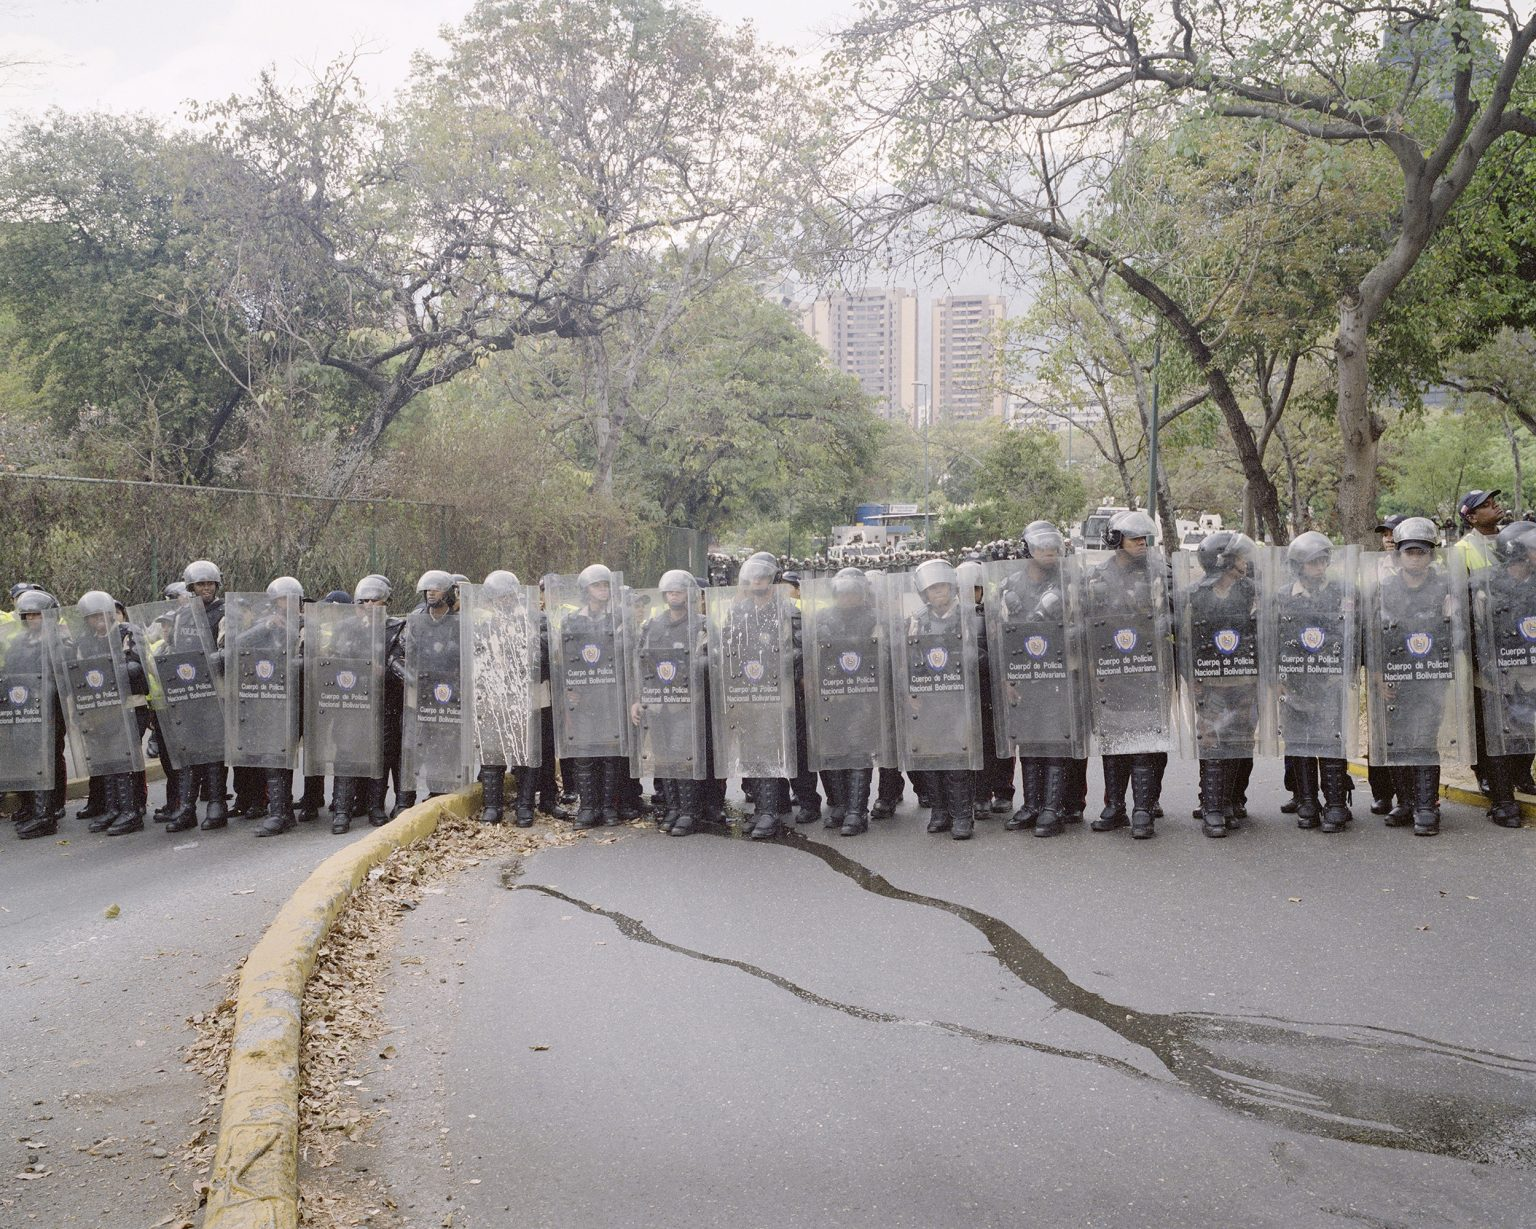 The National Guard waiting for a demostration of opposition students.